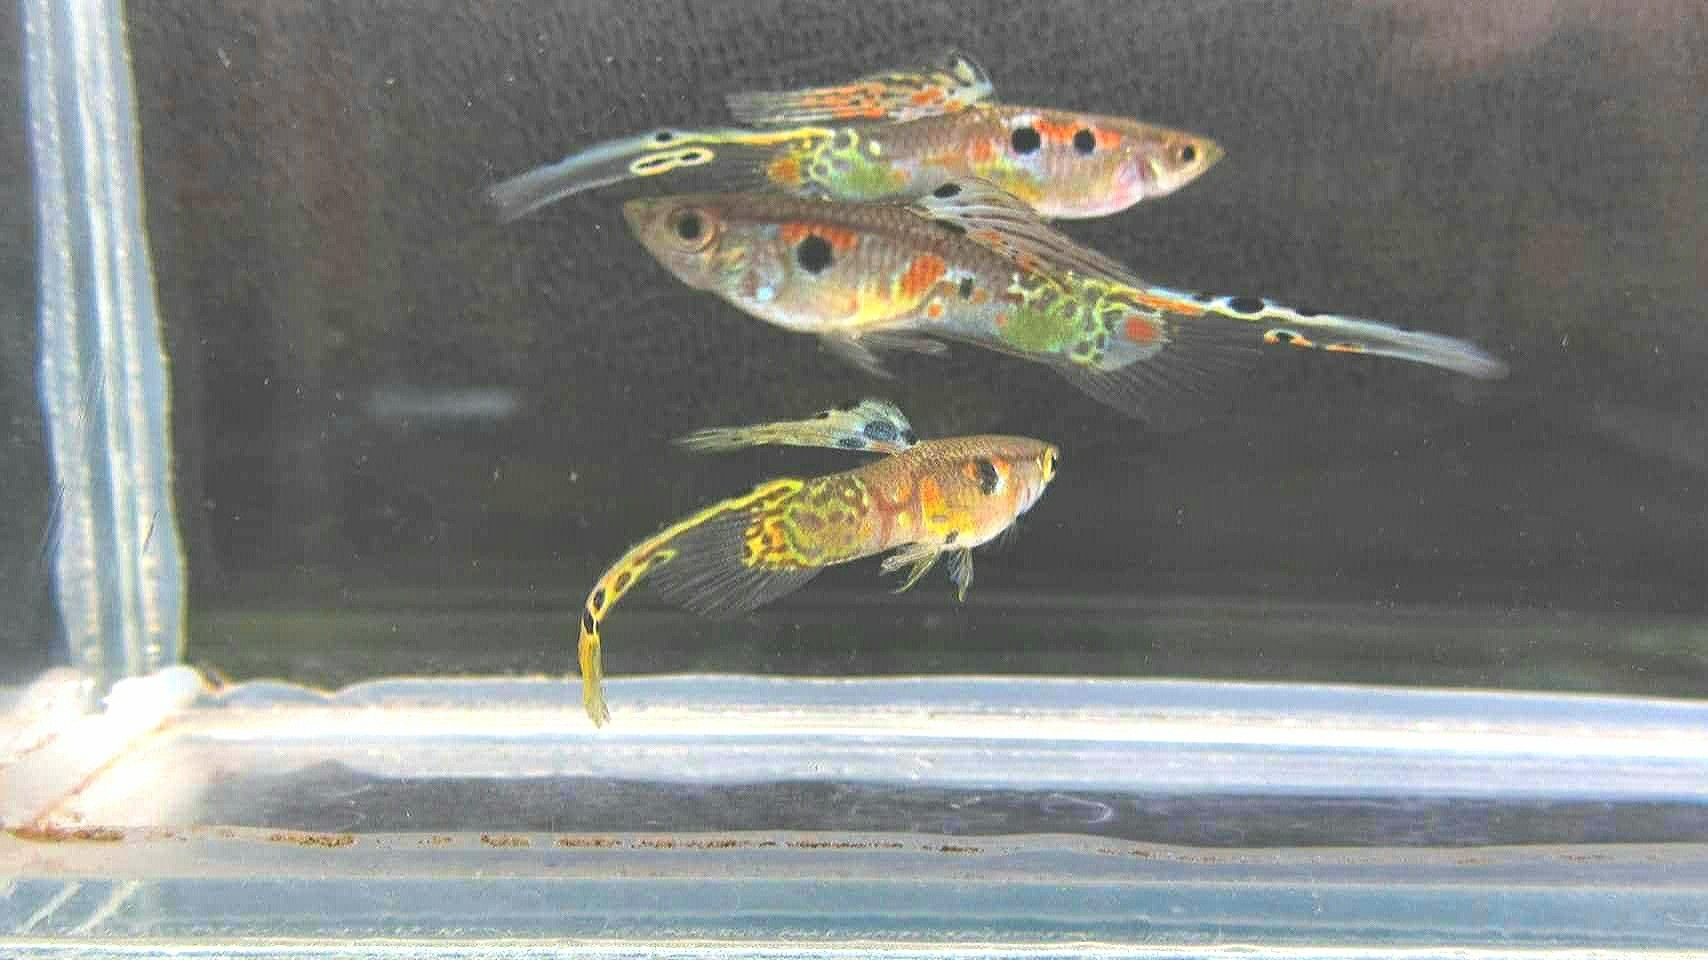 Pin by Abbas on Guppy's and family Guppy, Fish pet